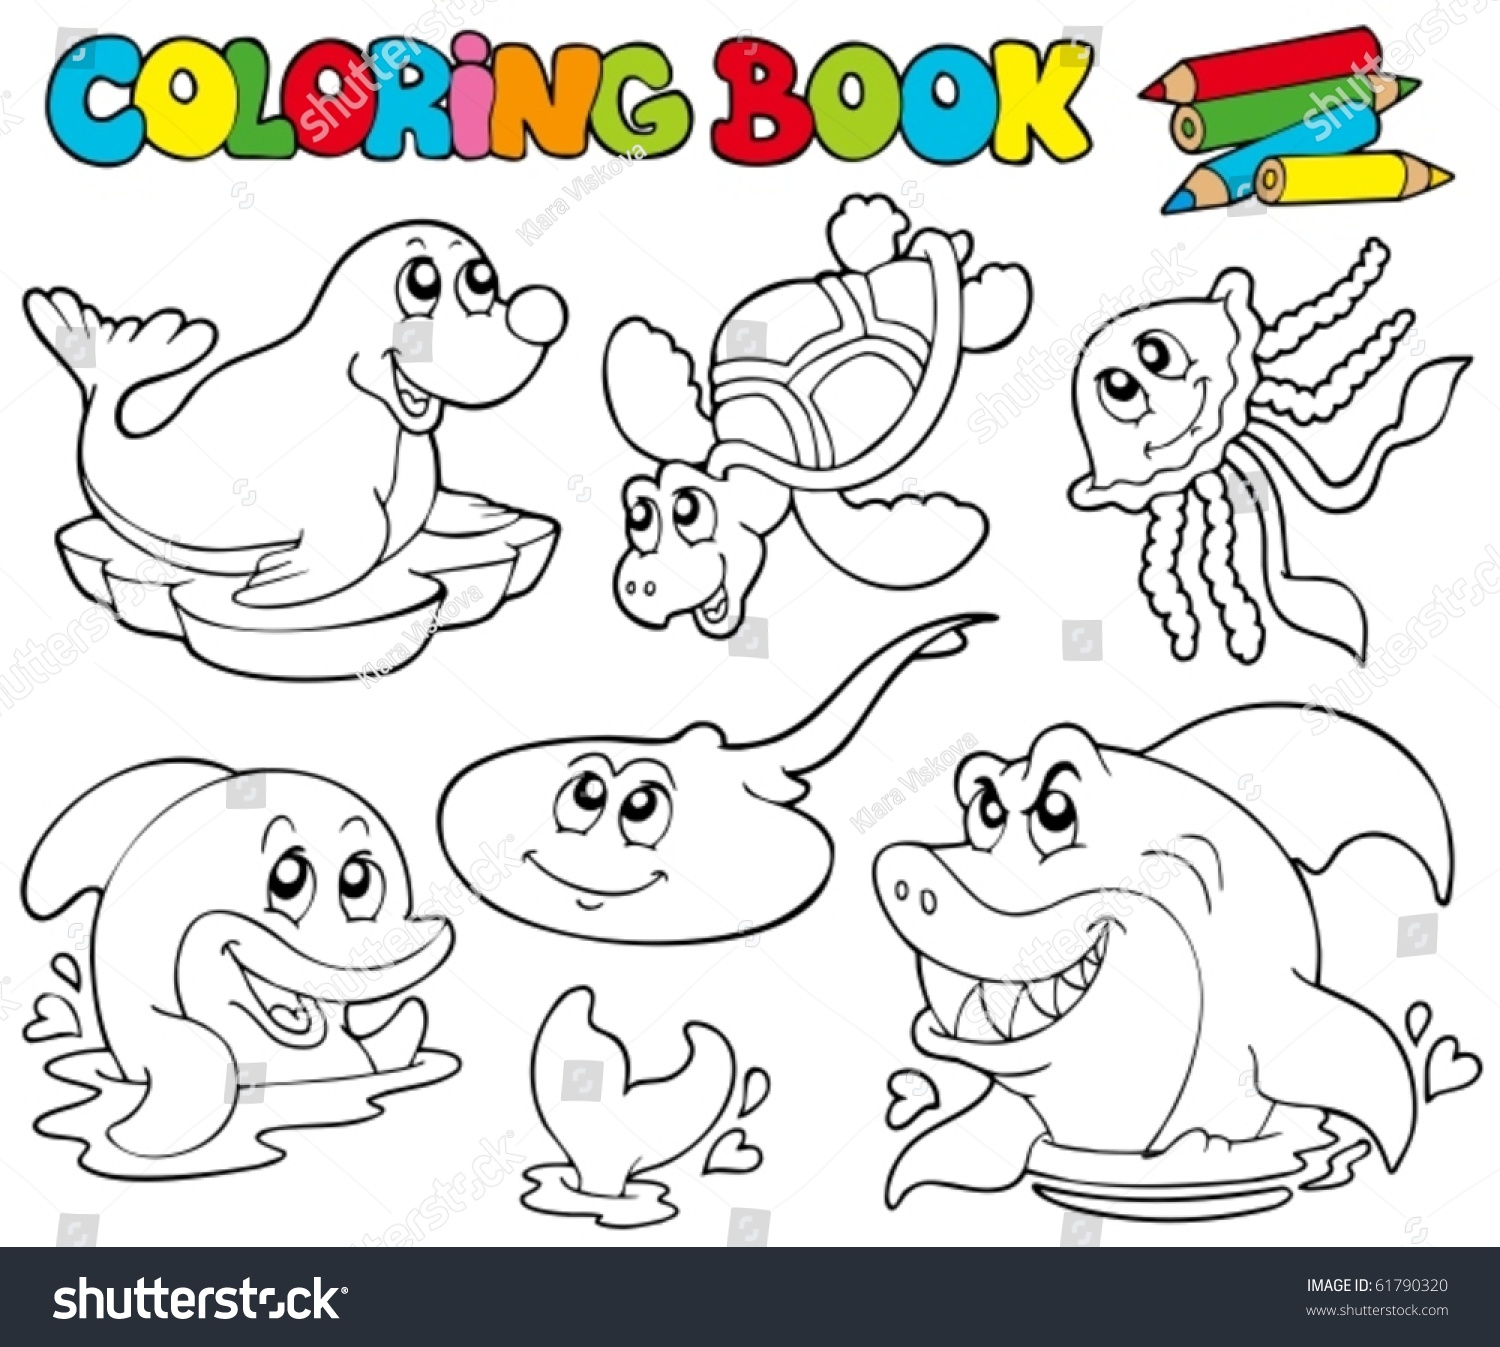 Delighted Tattoo Coloring Book Small Michaels Coloring Books Clean Mystical Mandala Coloring Book Mickey Mouse Coloring Book Old Fairy Coloring Book RedBlack Panther Coloring Book Coloring Book Marine Animals 1 Vector Stock Vector 61790320 ..